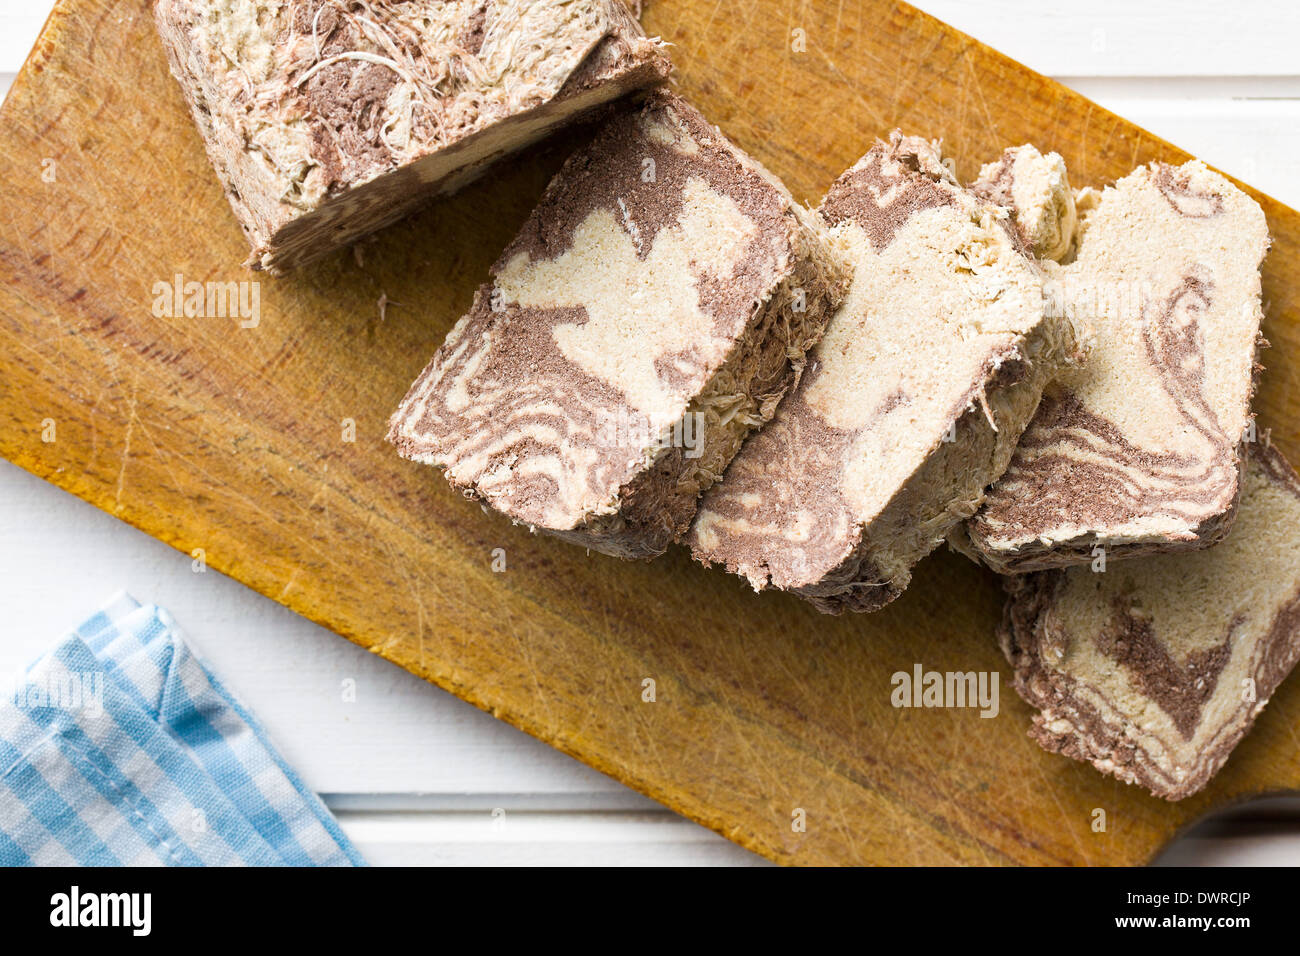 pieces of tasty halva on kitchen table - Stock Image